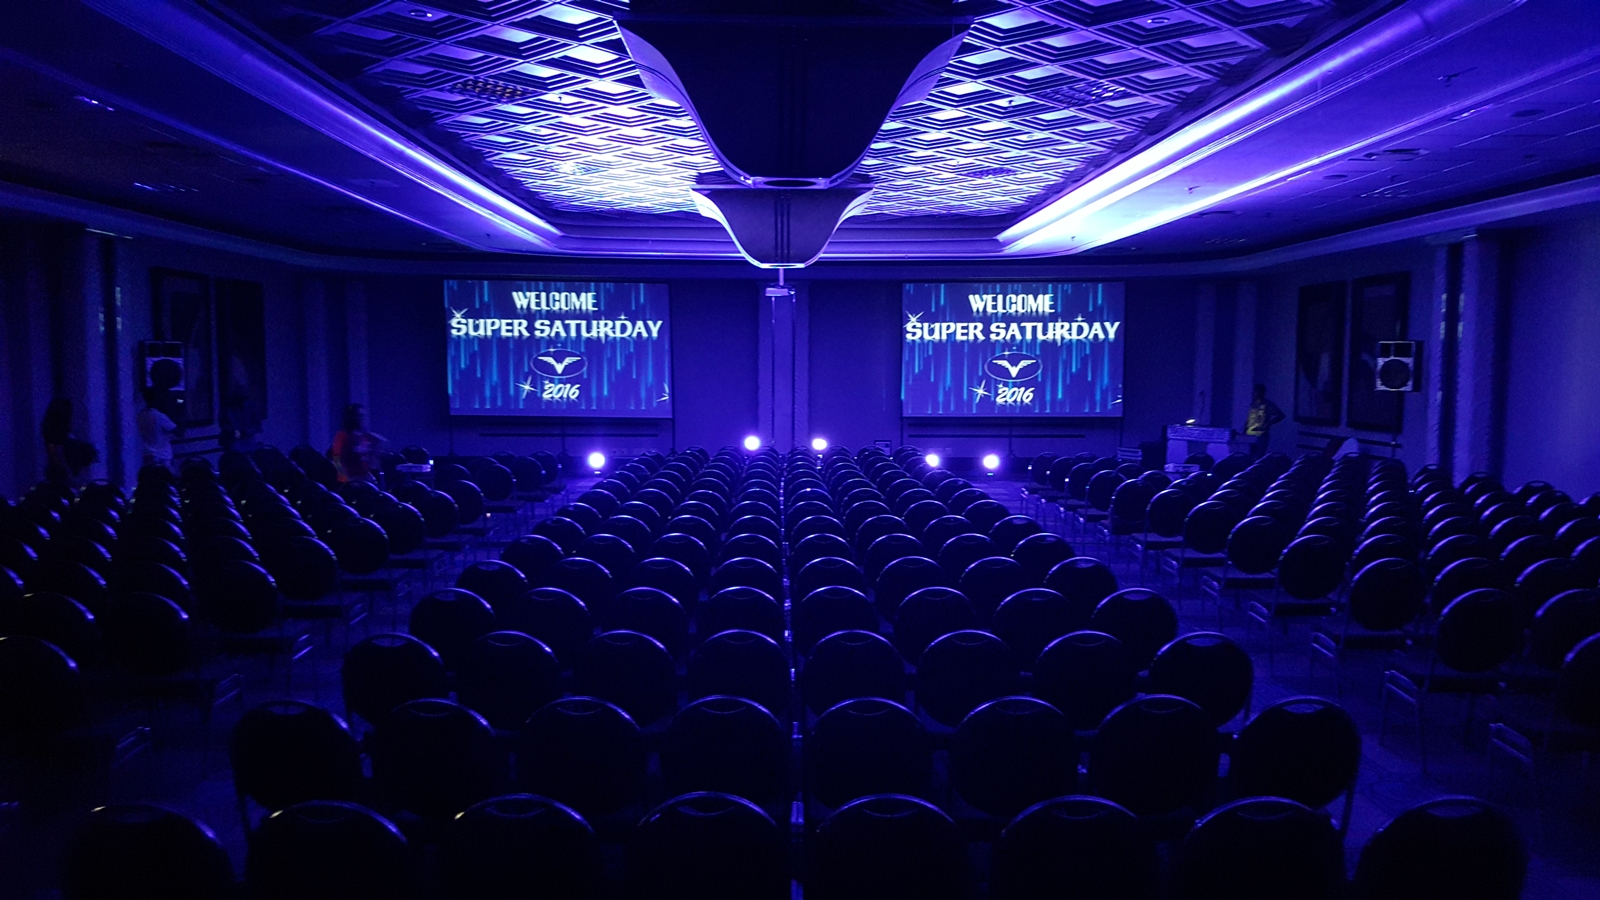 4M PROJECTOR SCREEN PACKAGE IDEAL FOR 500 TO 2000 PLUS CONFERENCE OR BIG BIRTHDAY EVENT OR DEATH CEREMONY POWER POINT SLIDE SHOW VIEW VIA PROJECTOR AND SCREEN PROJECTIONS NOW AVAILABLE FOR HIRE AT GRAVITY SOUND AND LIGHTING WAREHOUSE DURBAN 0315072463